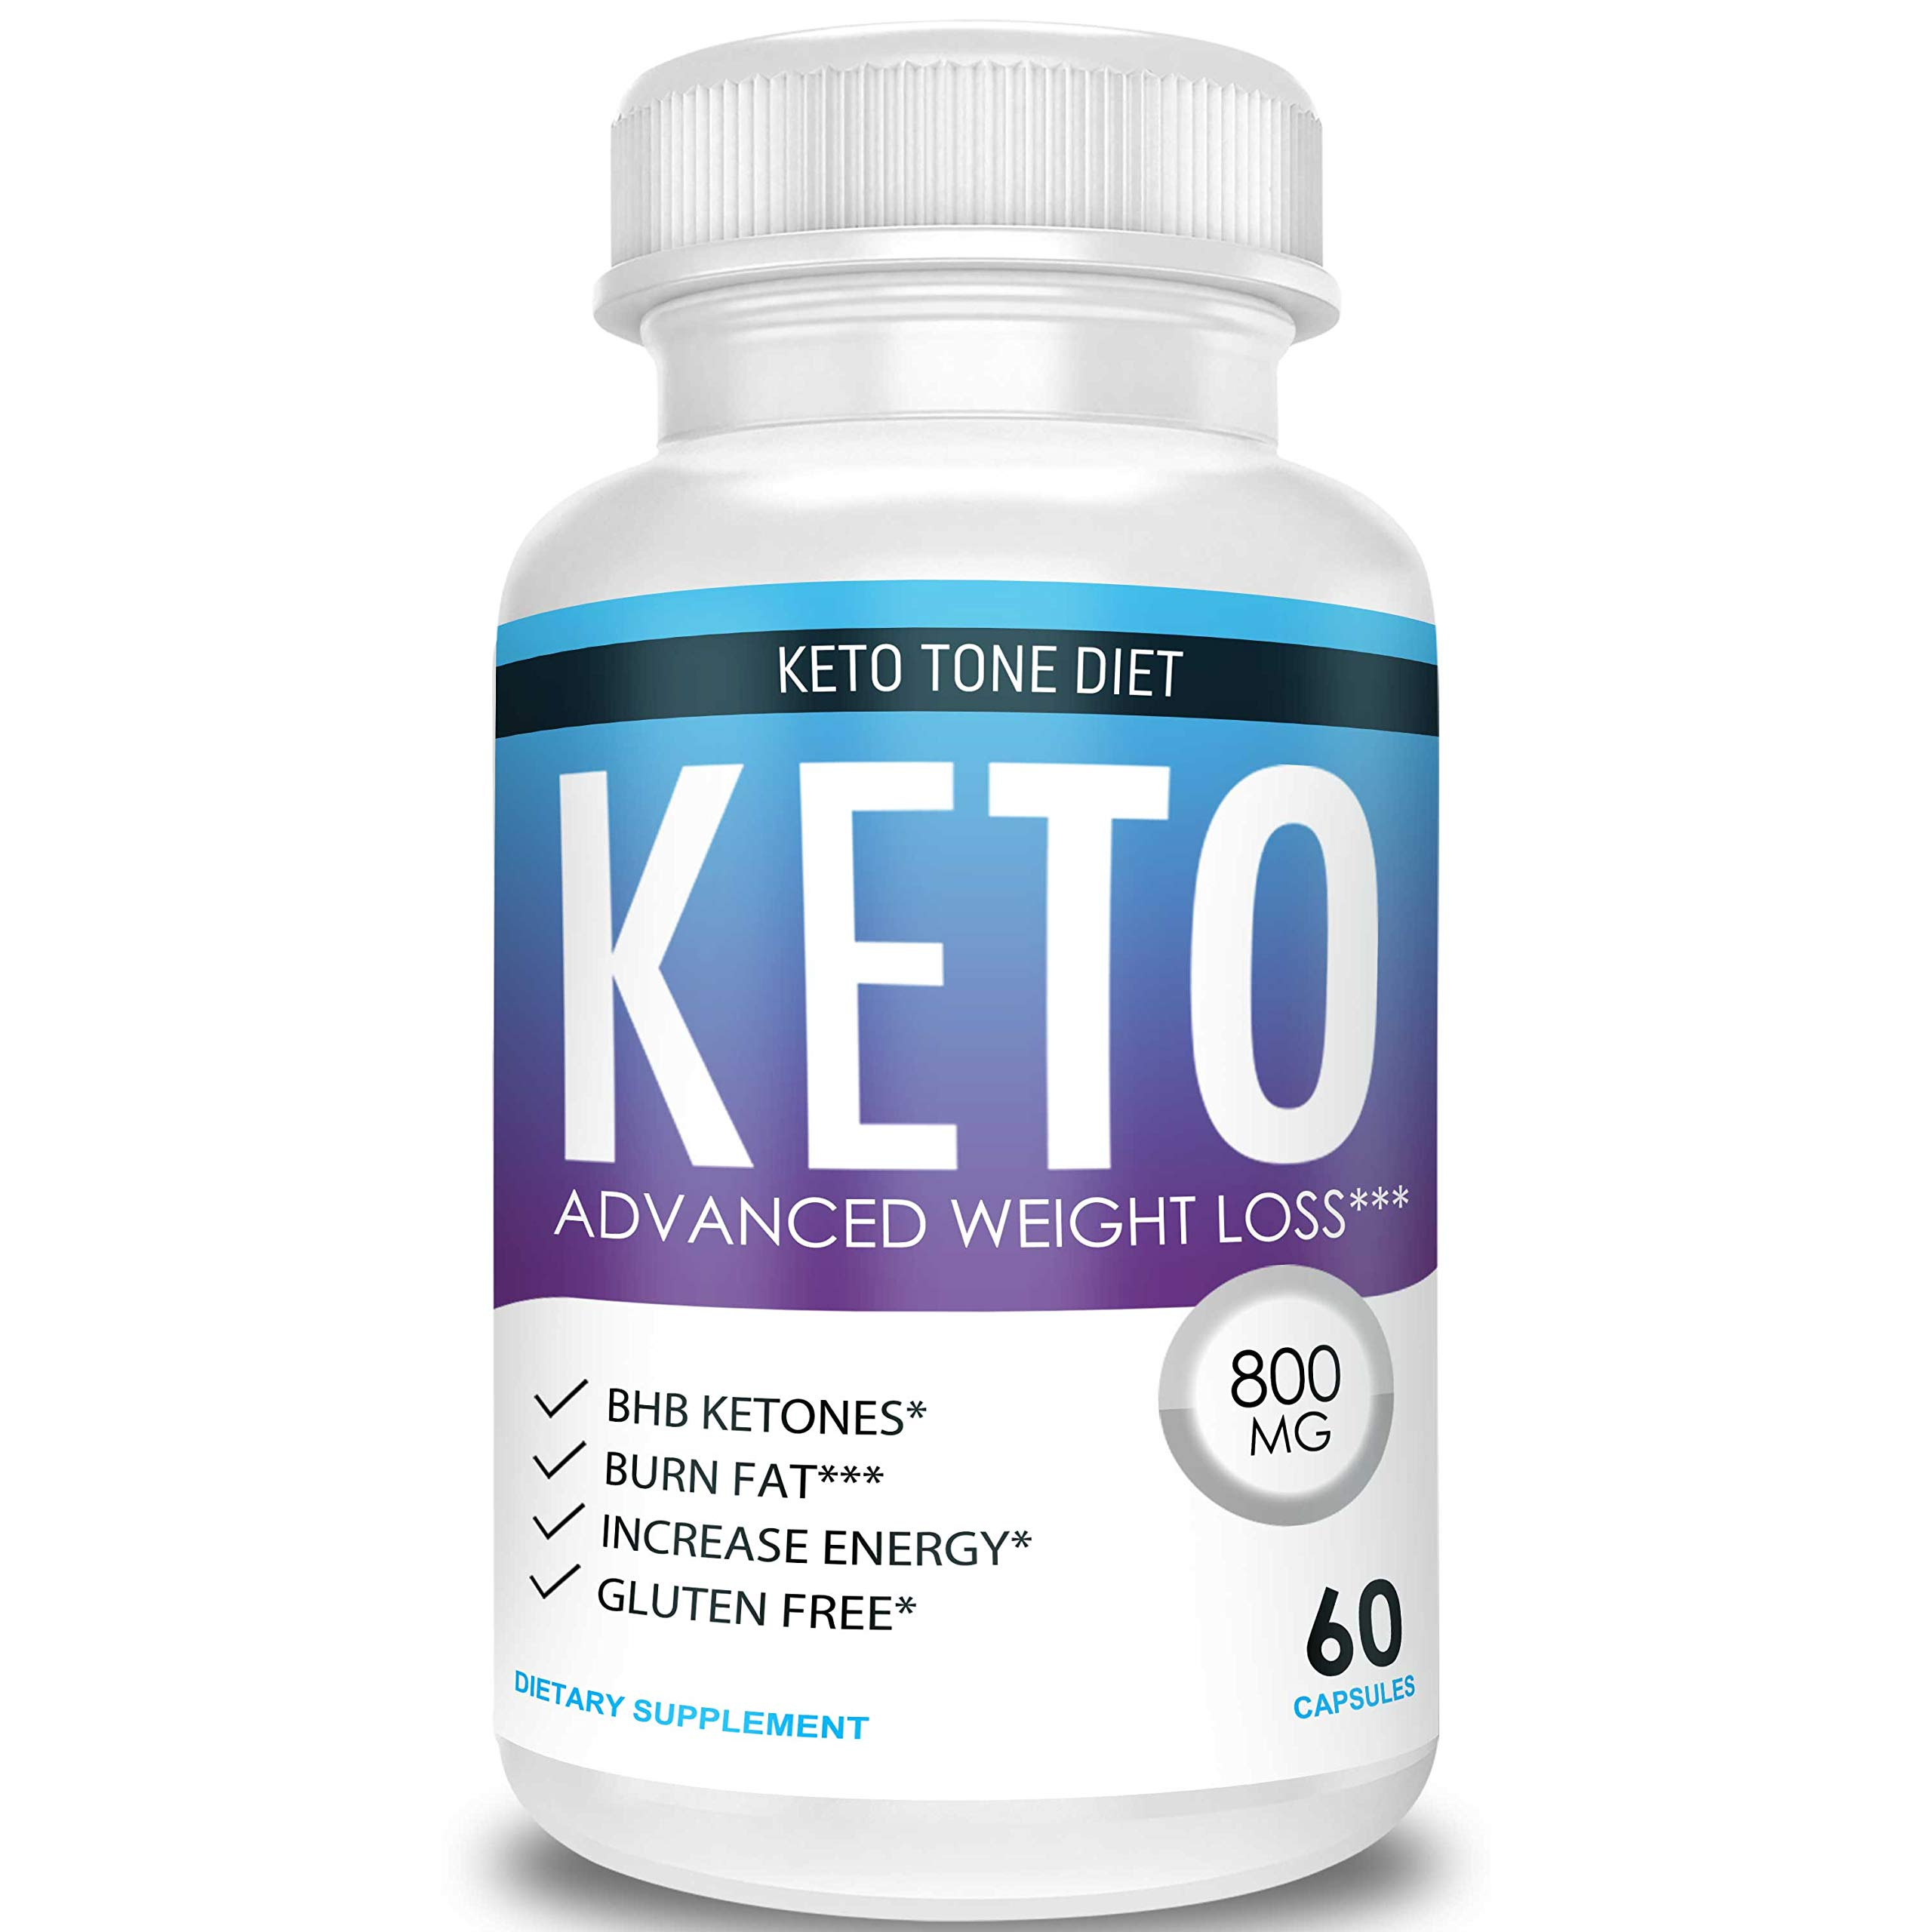 Keto Tone Diet - Advanced Weight Loss - Ketosis Supplement by Keto Tone Diet